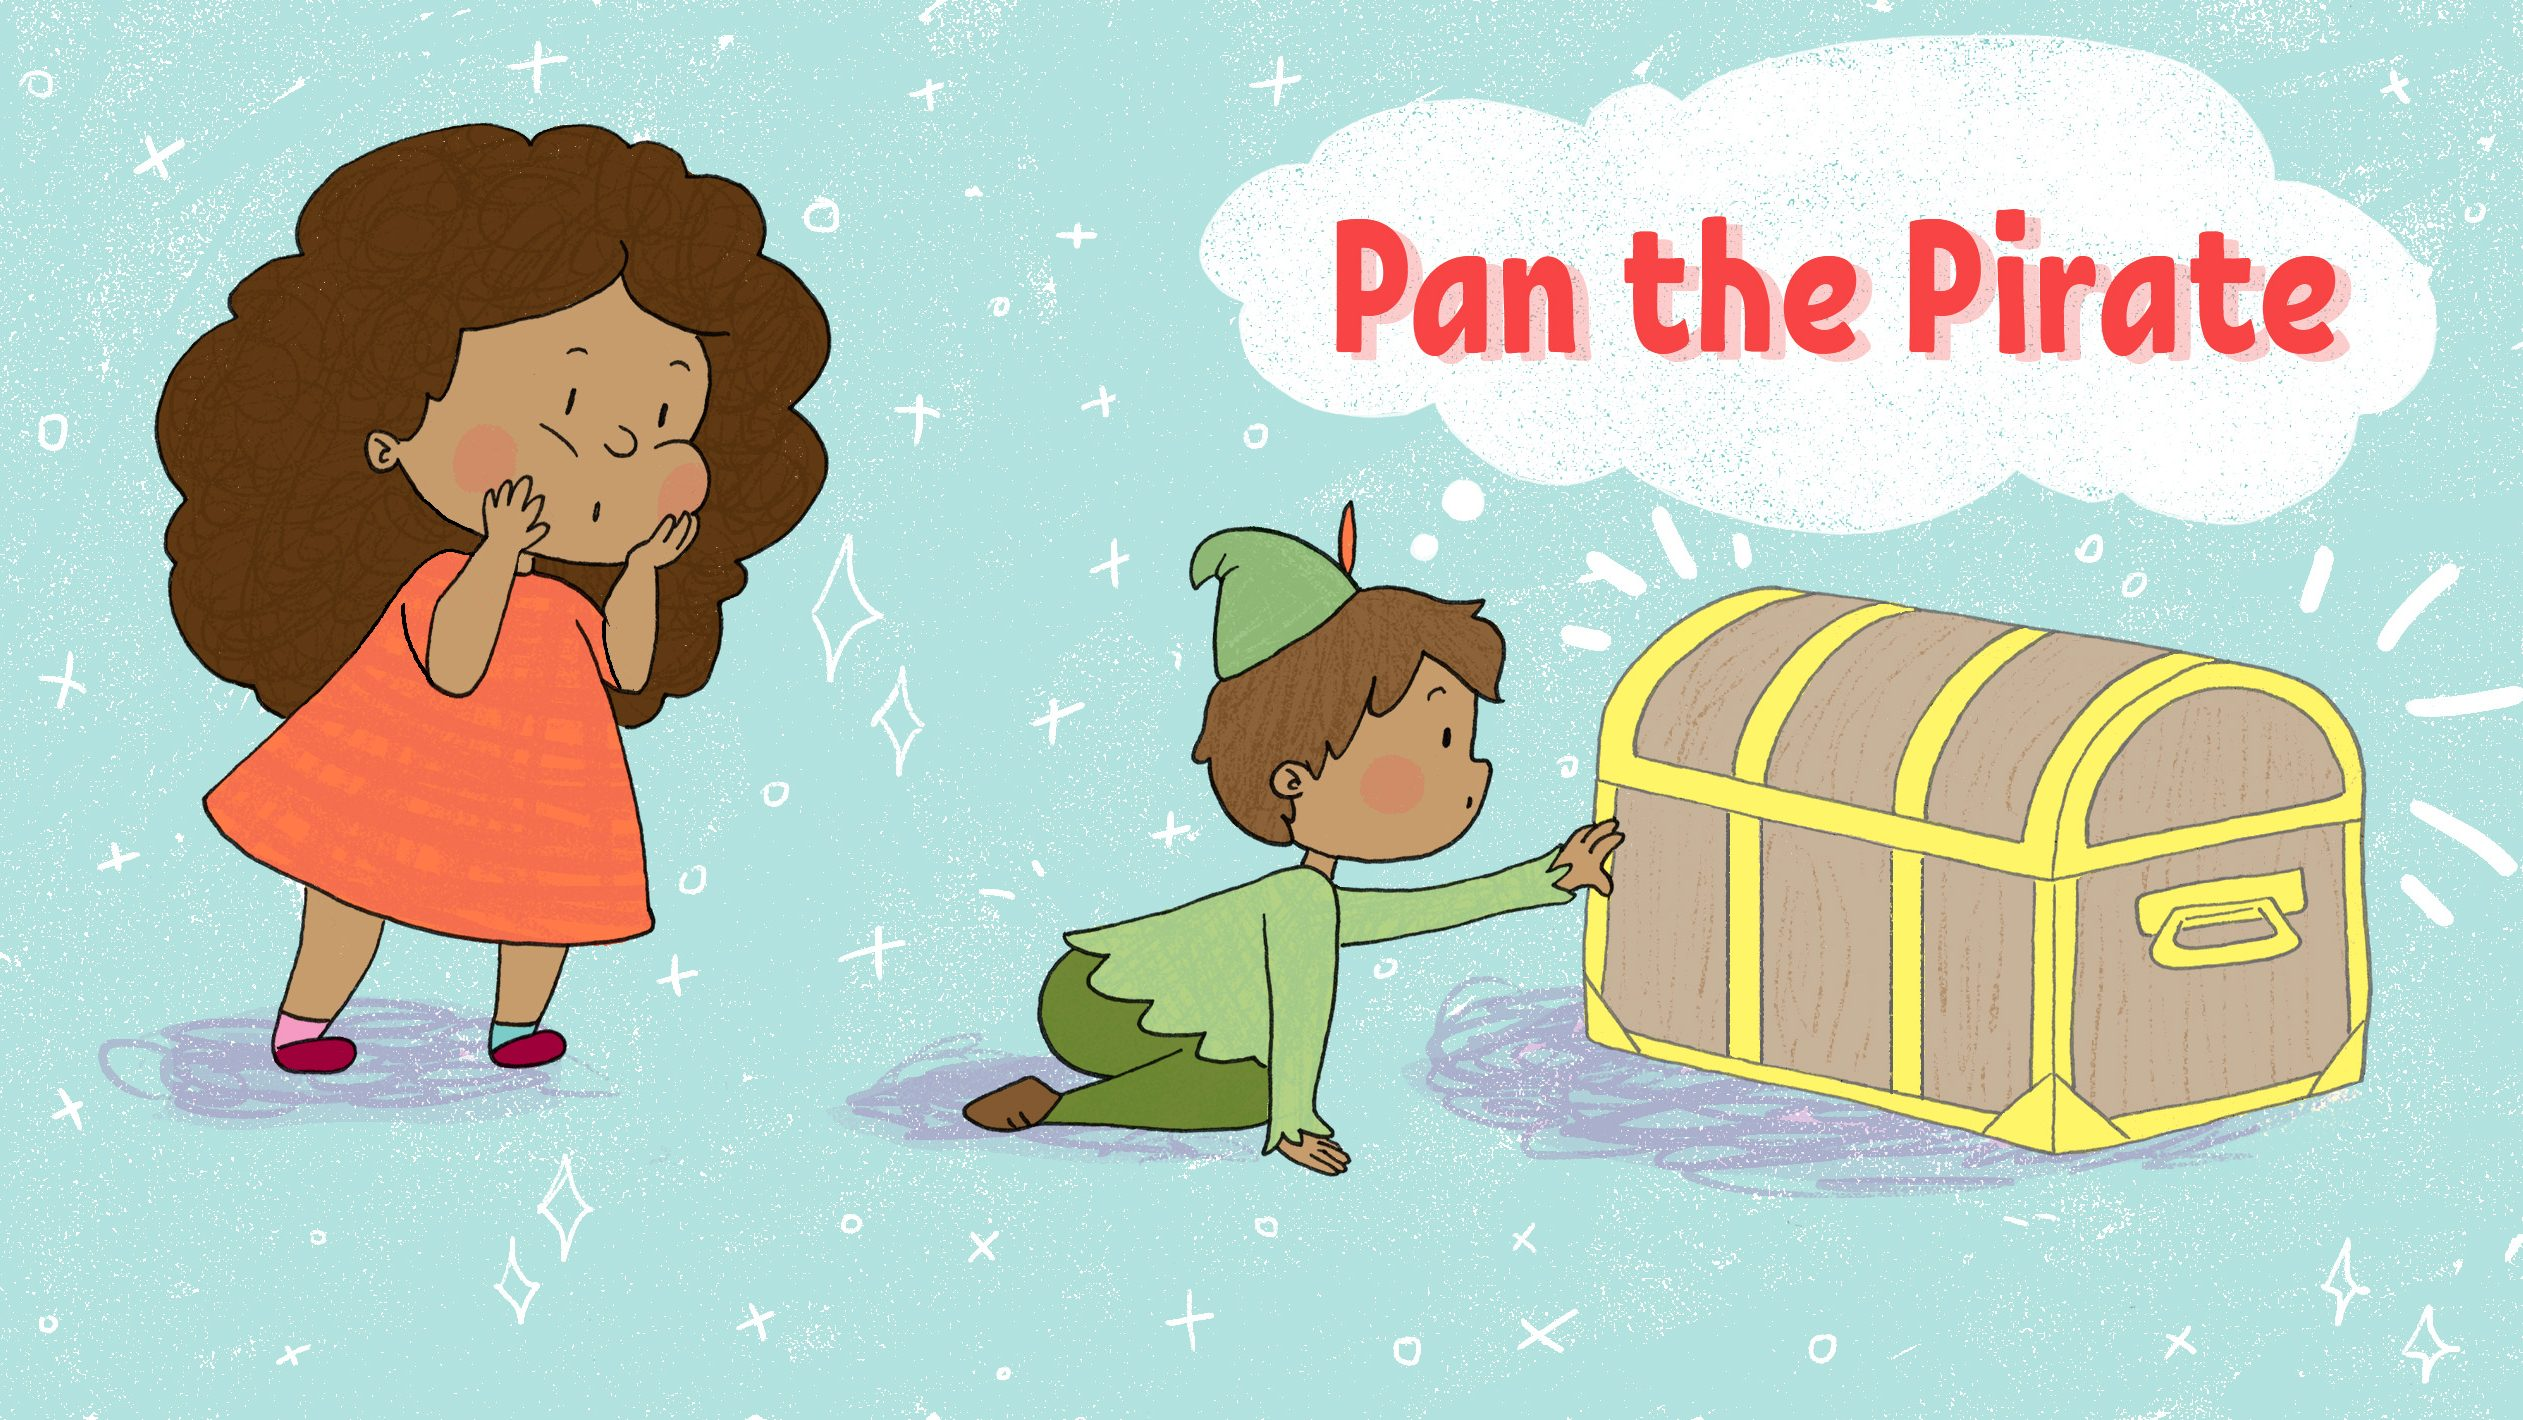 Pan the Pirate by Dani Martineck